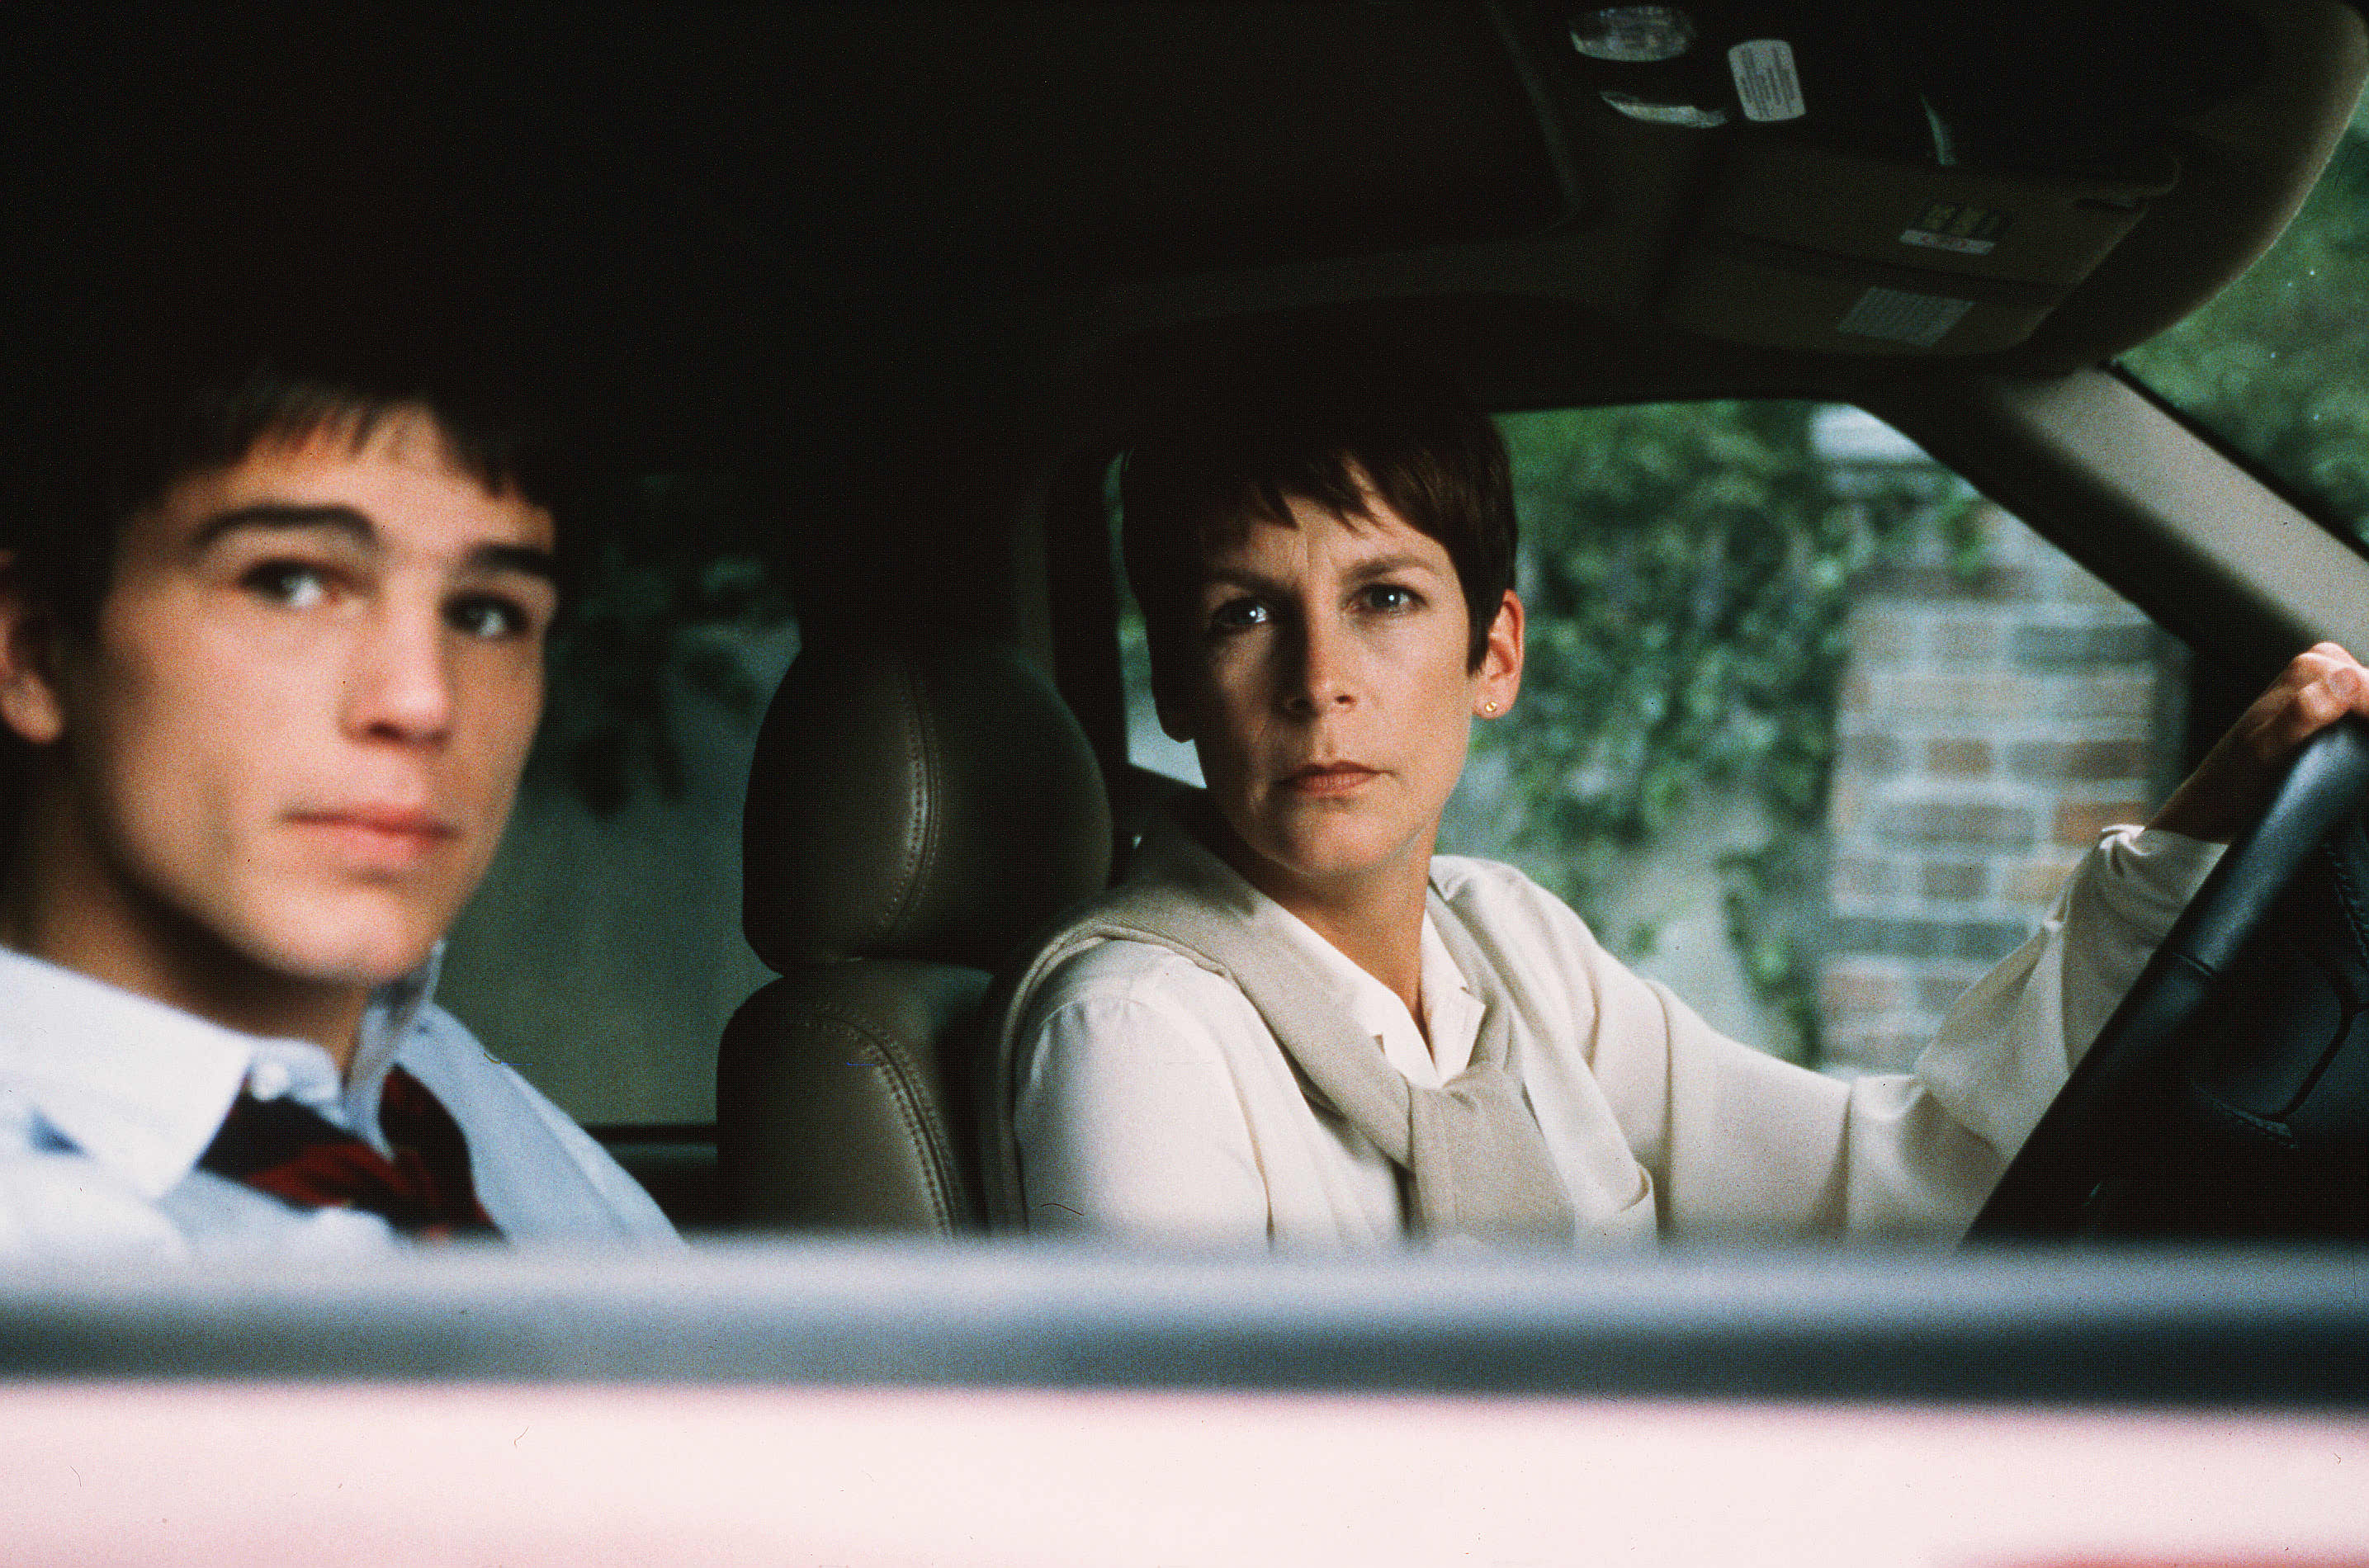 Laurie Strode (Jamie Lee Curtis), back after having spent twenty years living under an assumed name, and her teenage son Josh Hartnett in Halloween H20: Twenty Years Later (1998)